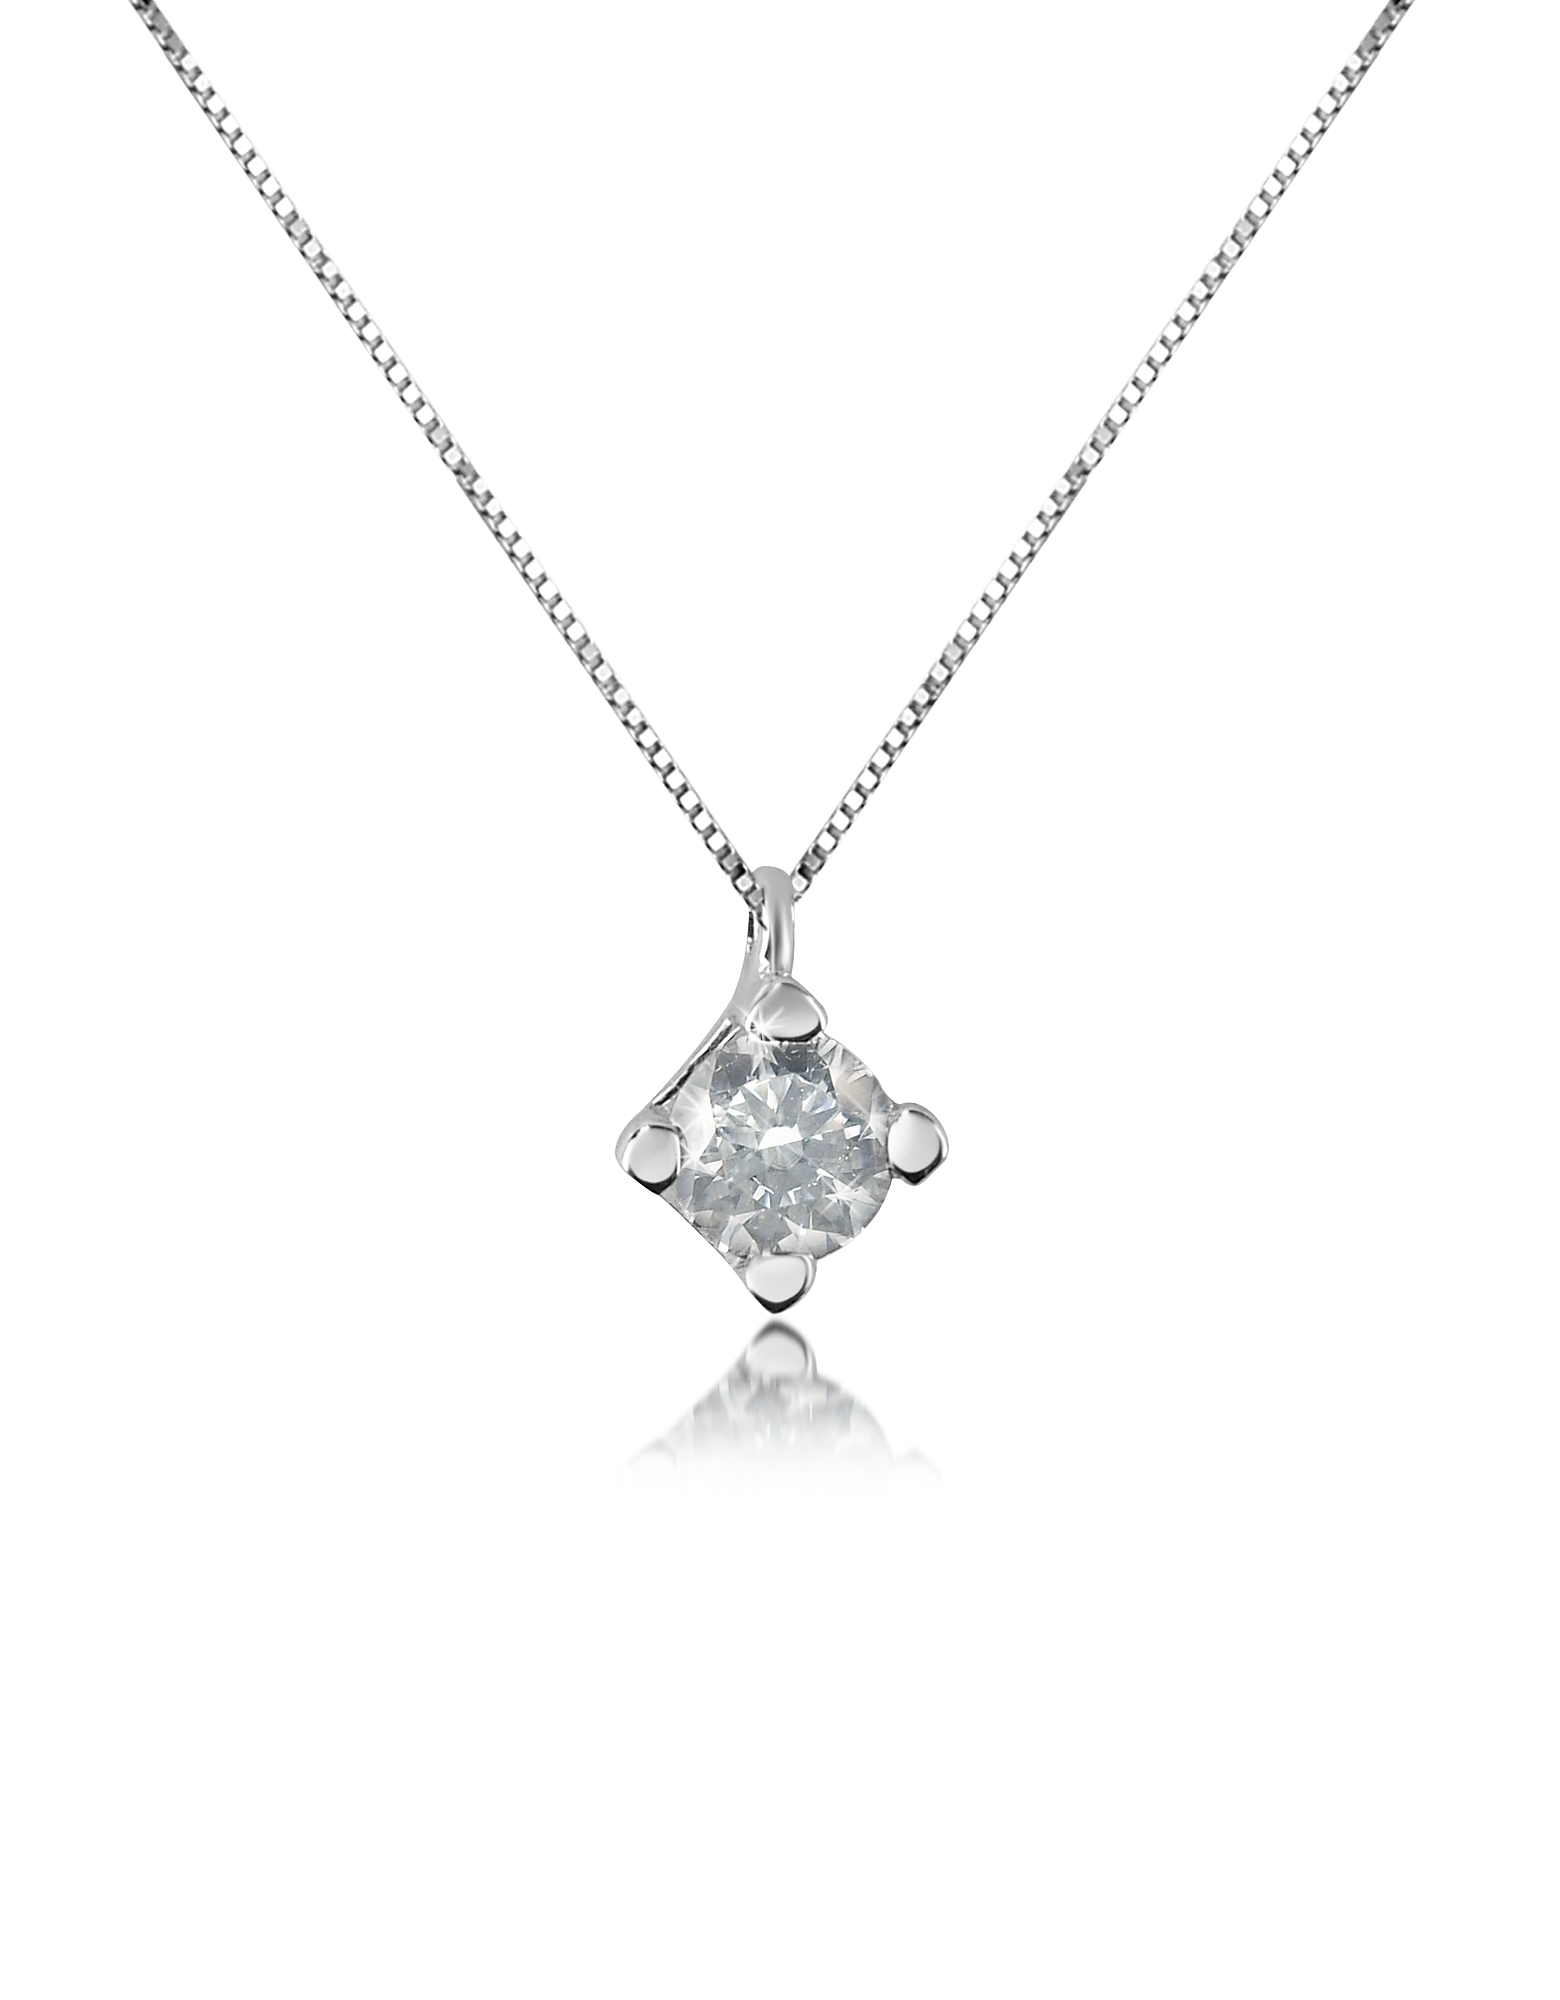 Forzieri Designer Necklaces, 0.15 ct Diamond Solitaire Pendant 18K Gold Necklace